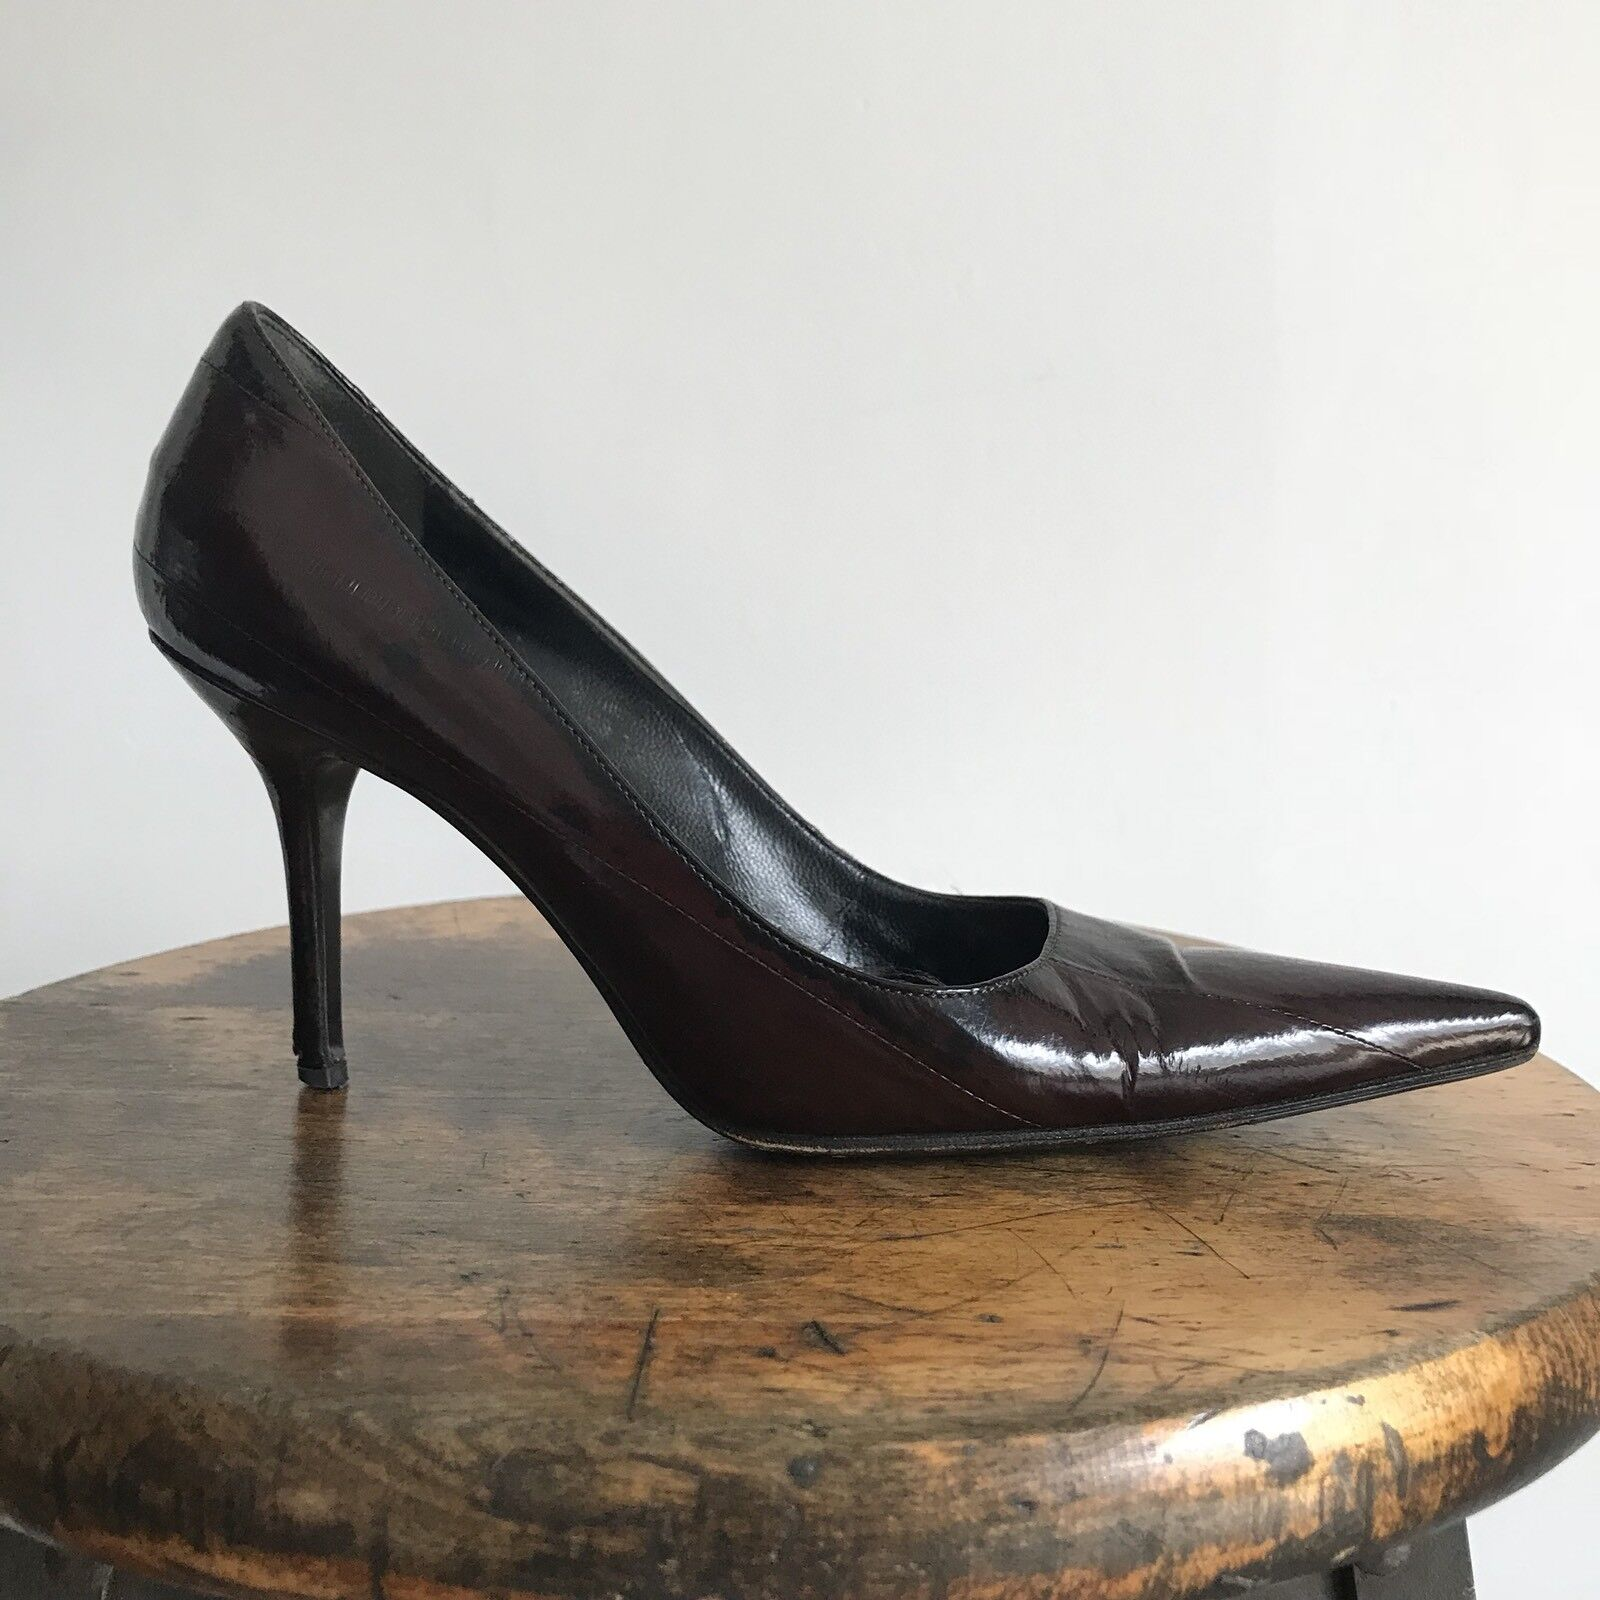 Dolce & Gabbana Dark Braun Eel Skin Pointy Toe Pump Classic Work Wear 37.5